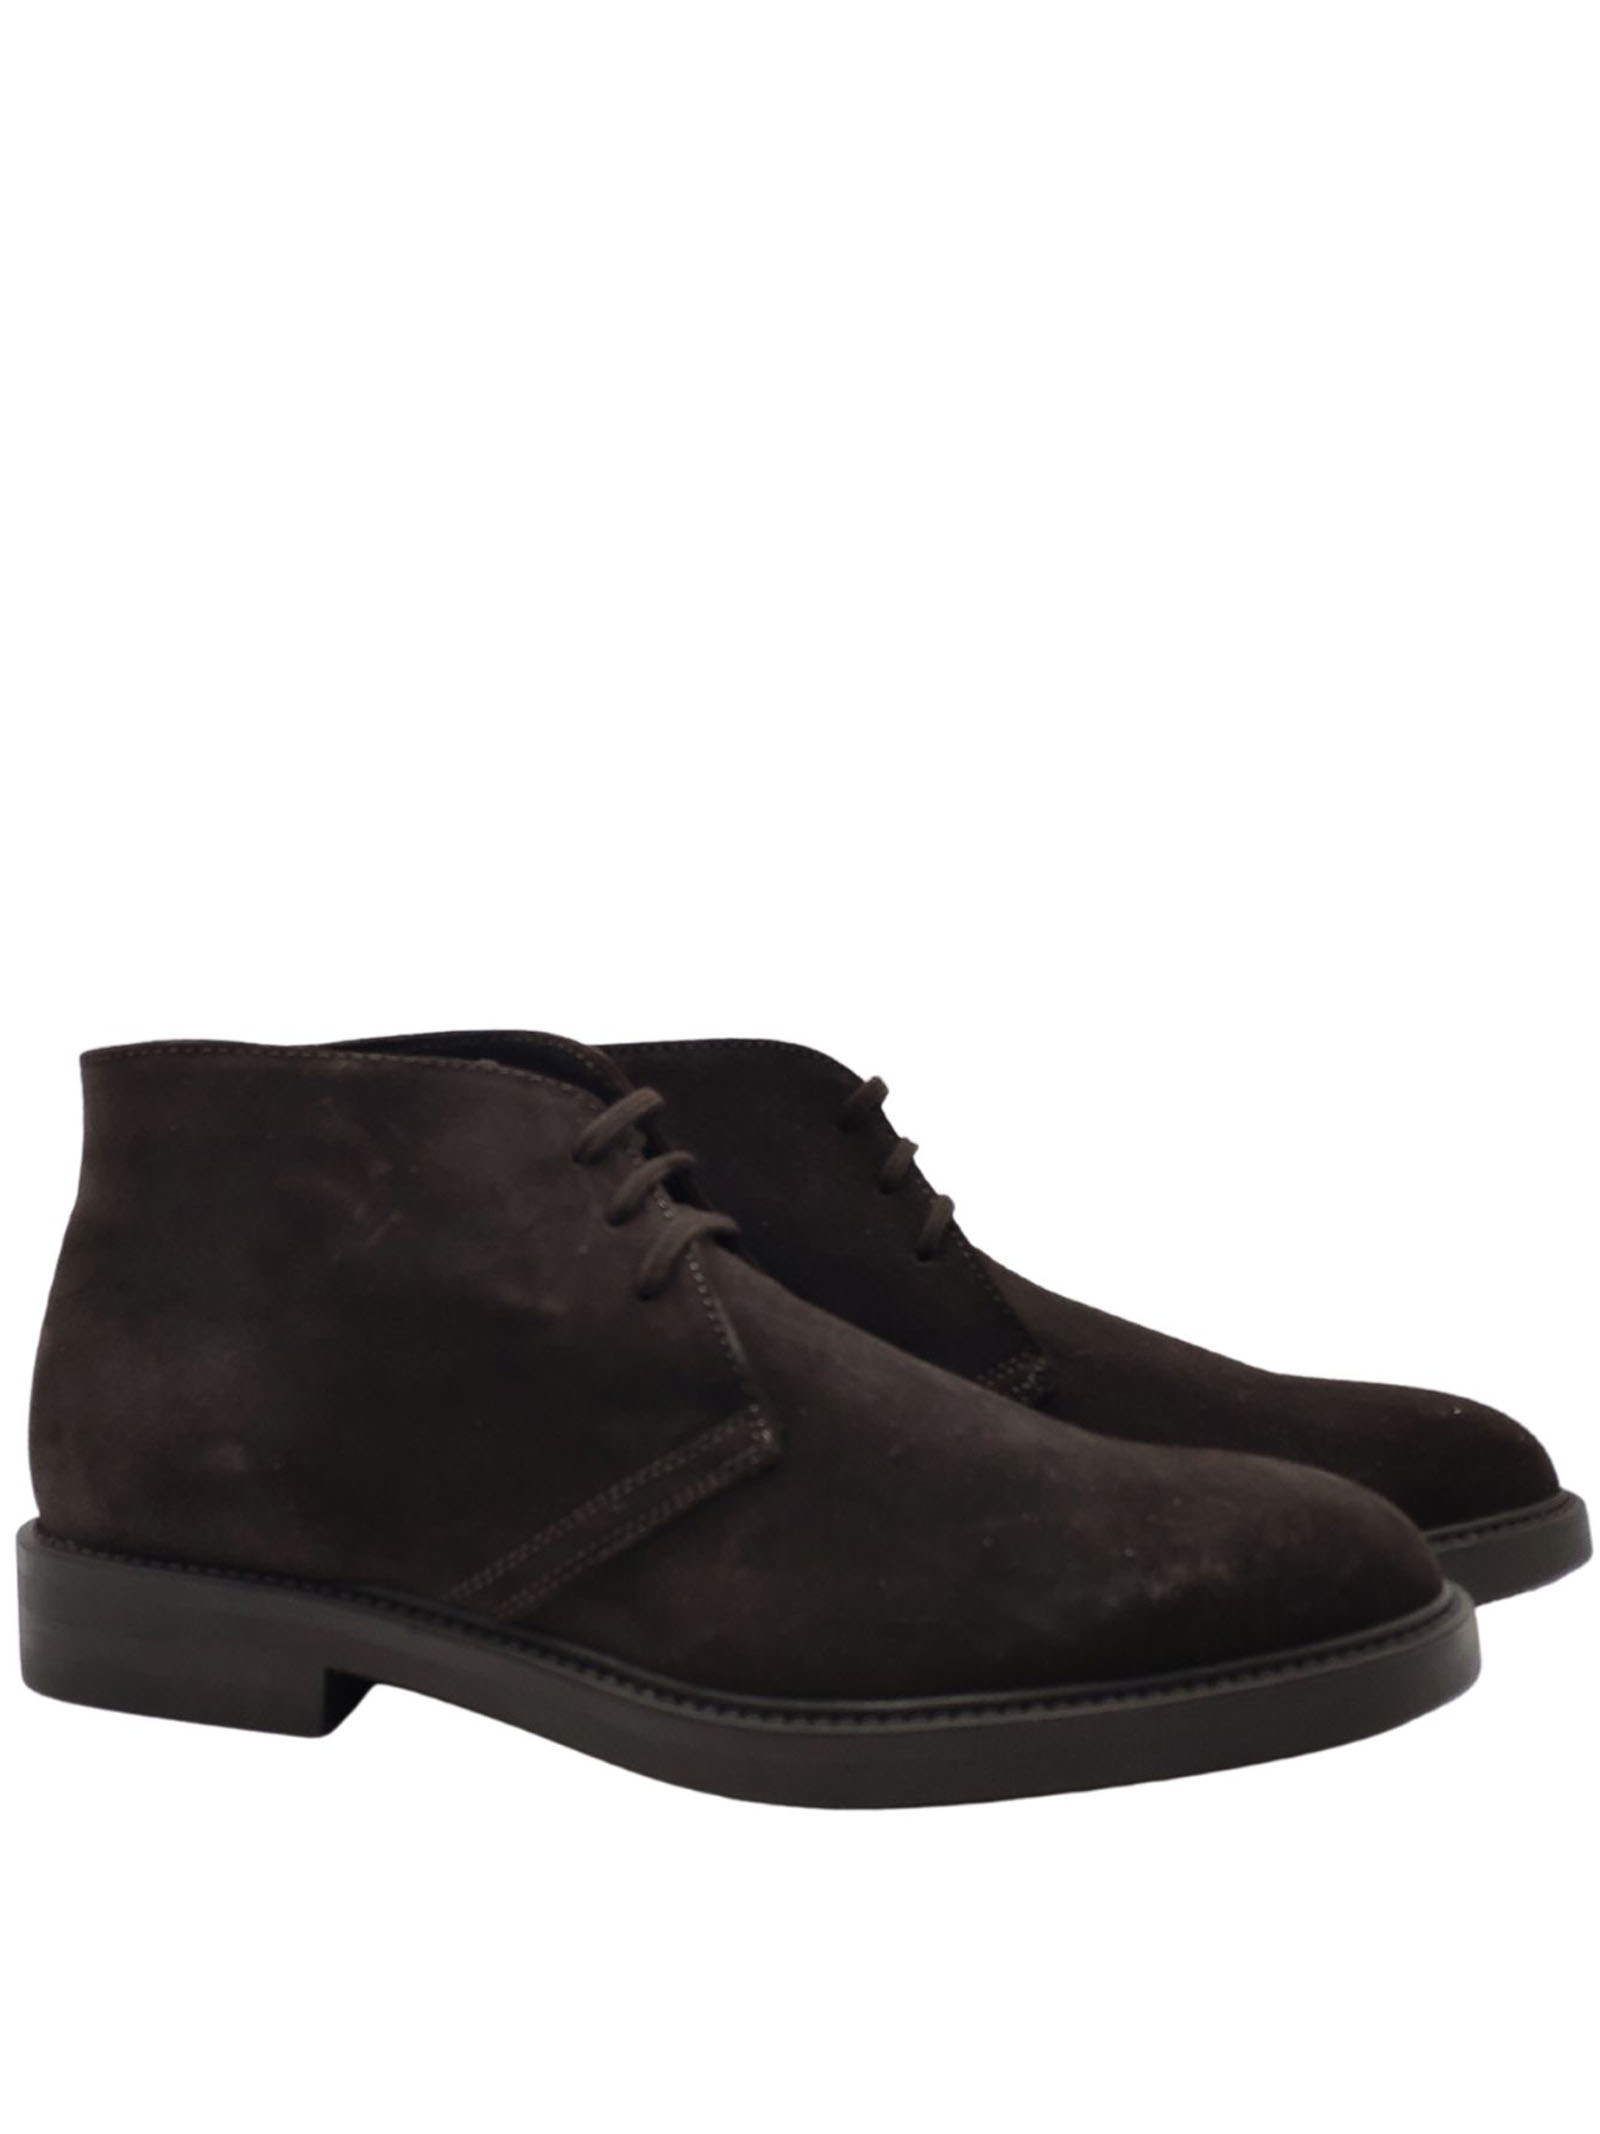 Ankle Boots Man Moro Florsheim | Ankle Boots | 5185730